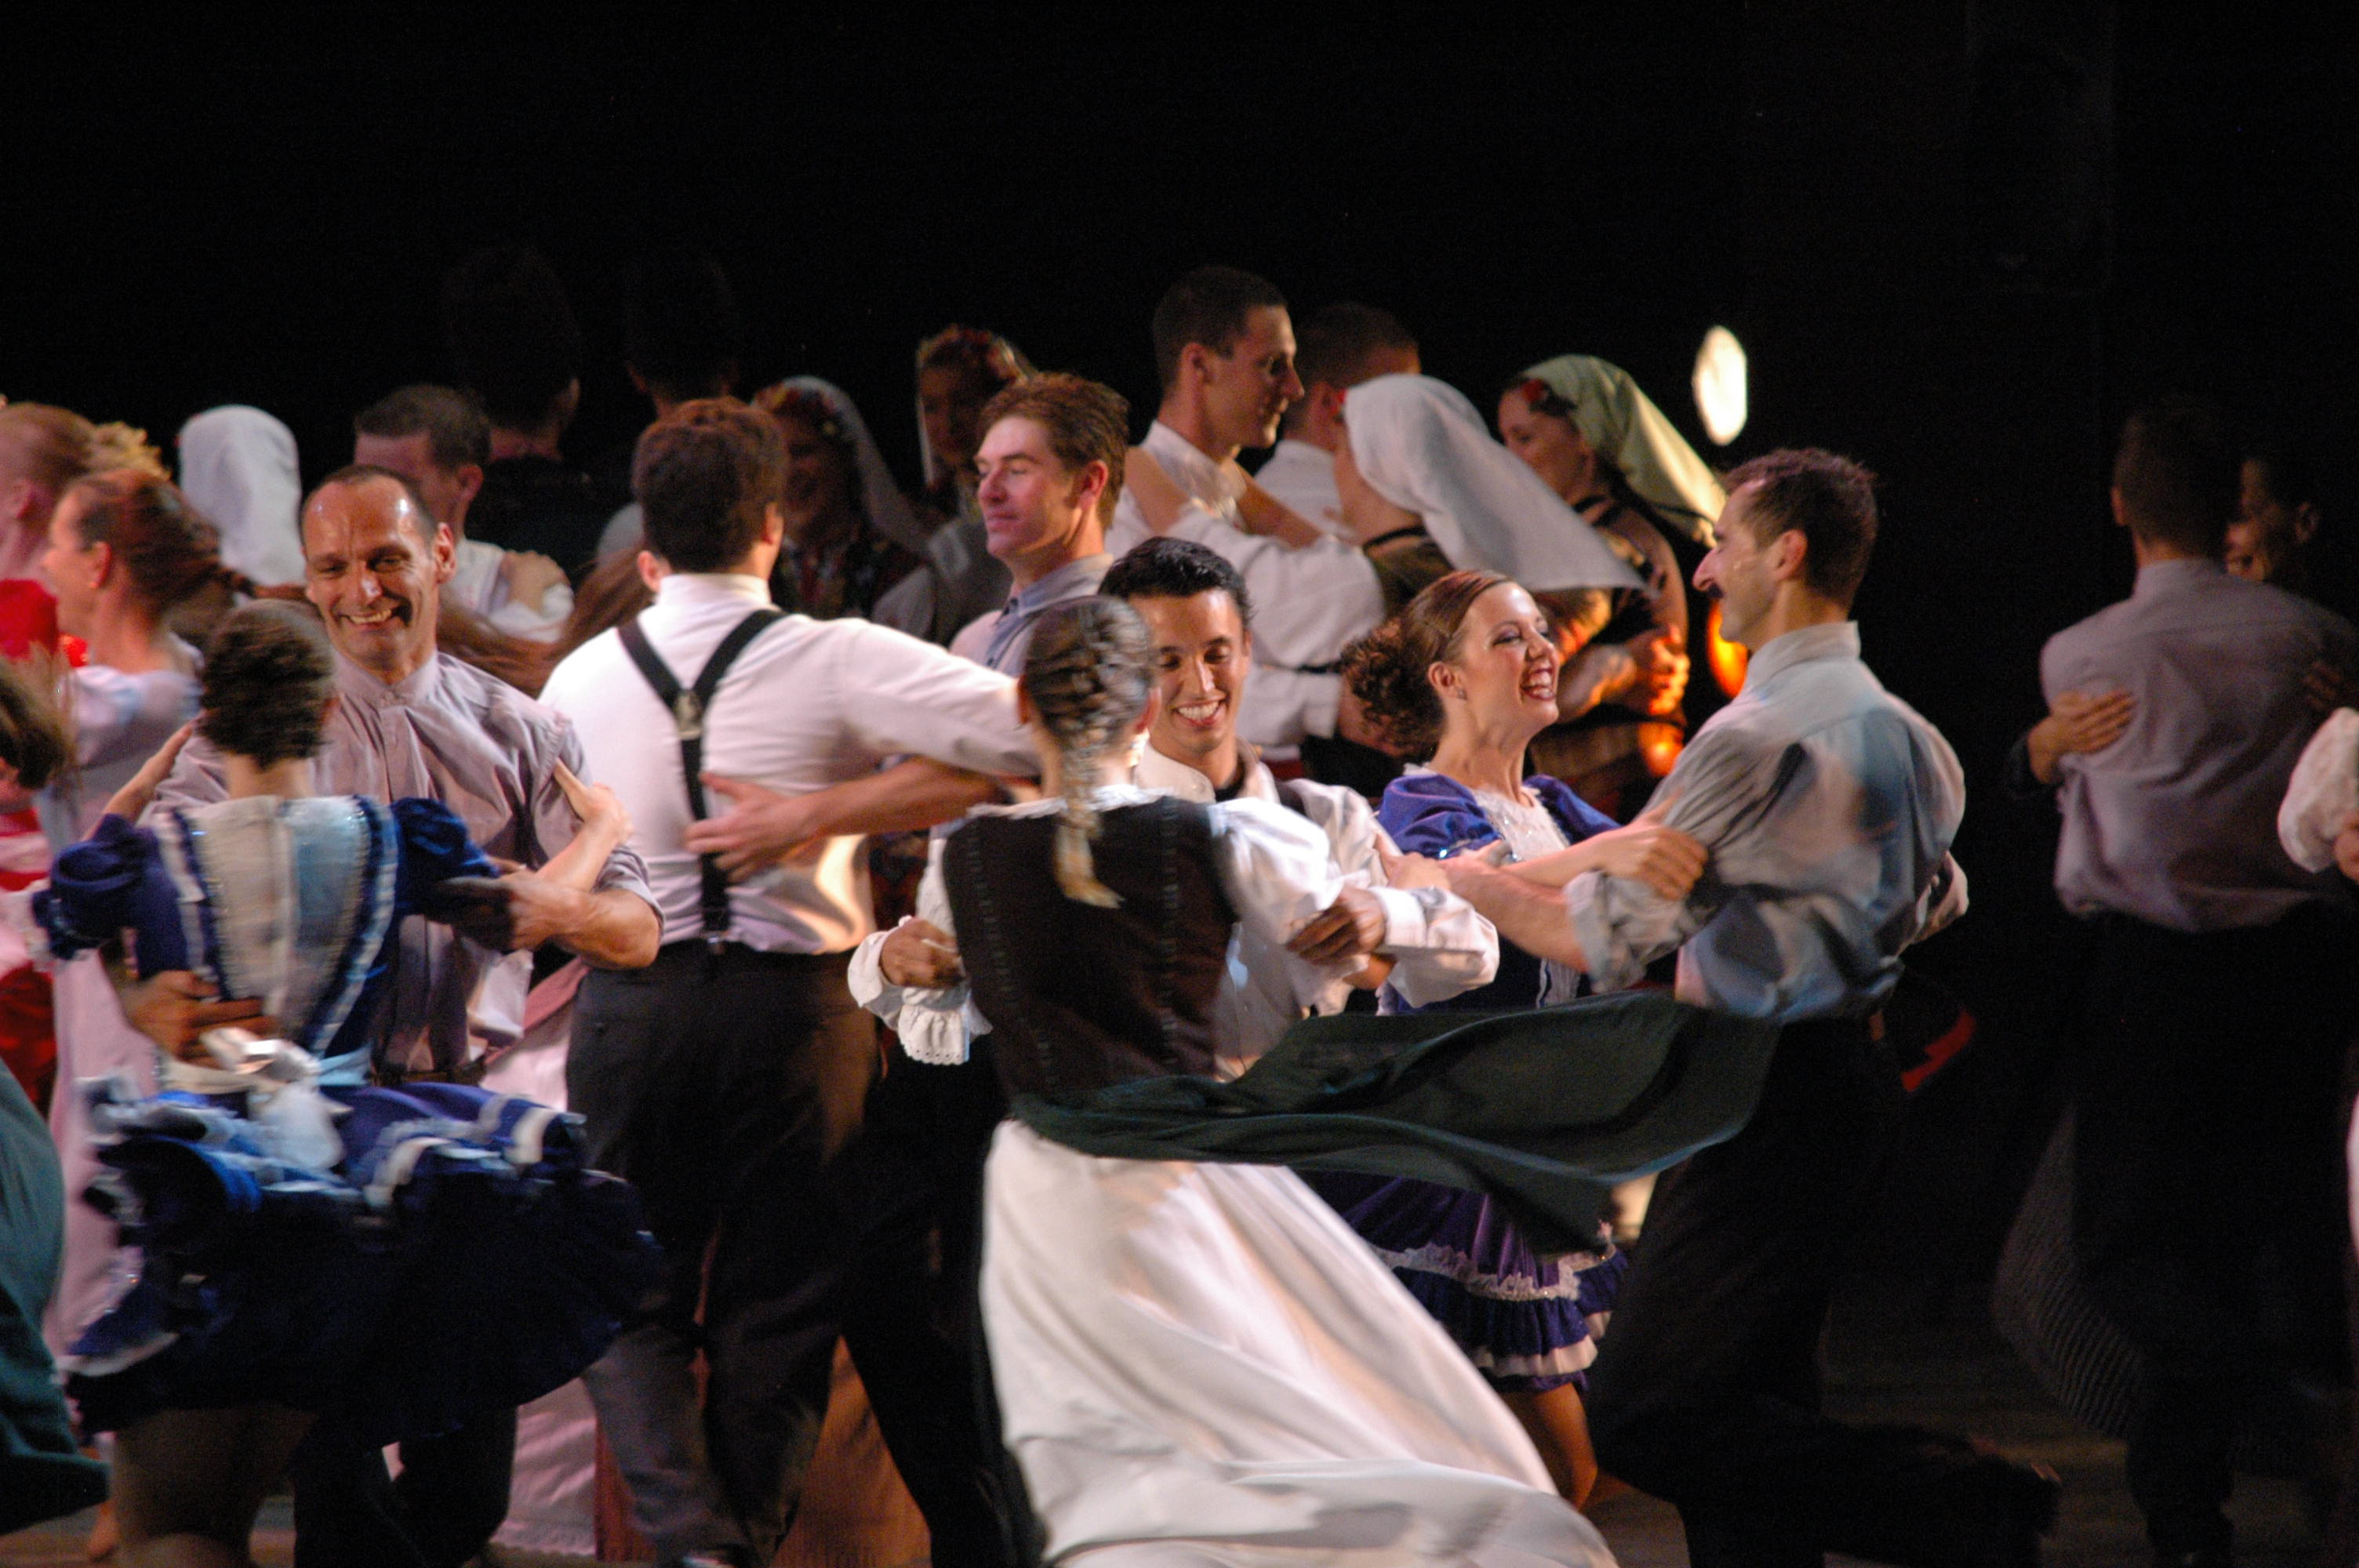 """At a dance festival in Budapest, BYU folk dancers partnered with members of the Hungarian State Folk Ensemble and Duna Art Ensemble to dance the Hungarian """"Szatmári."""" The dancers and other BYU groups demonstrate both their faith and academic achievement abroad. Photo courtesy Jonathon Wood."""